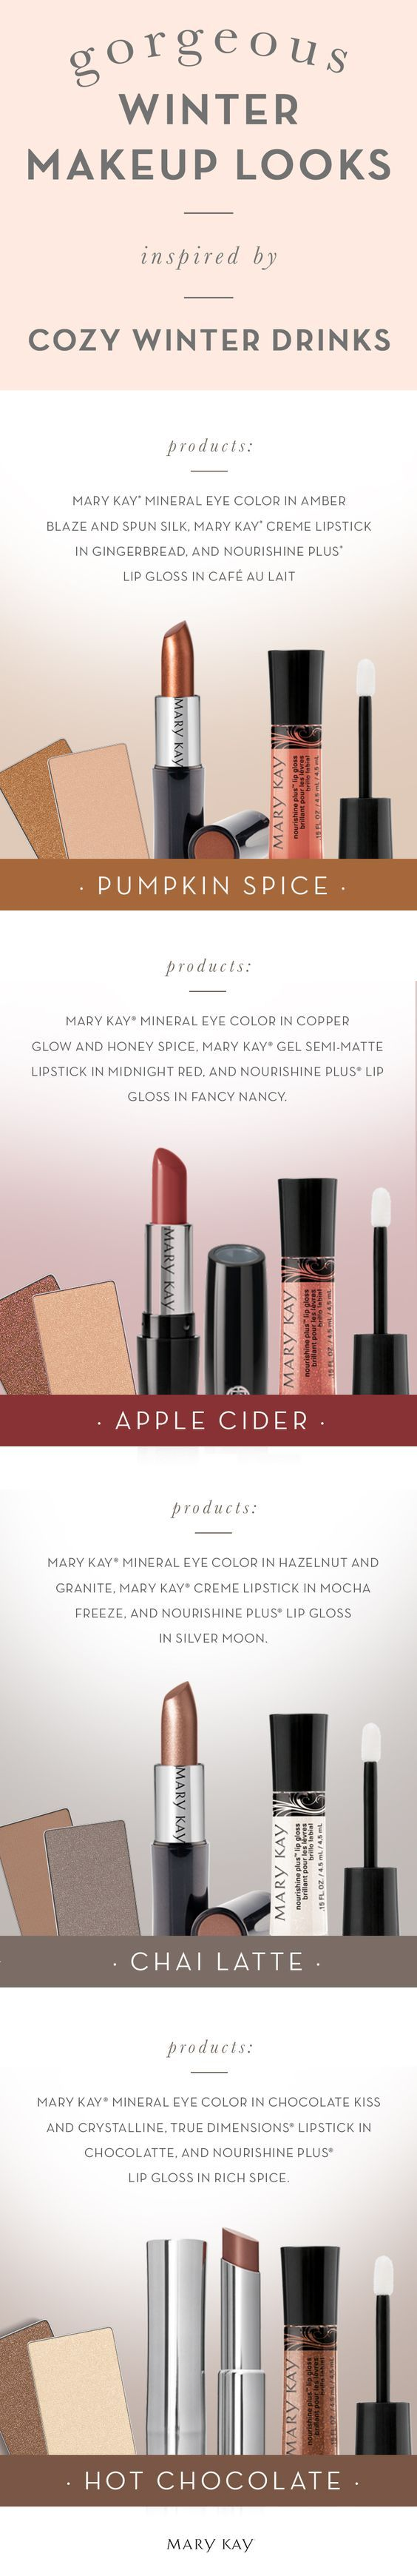 Mary Kay turned into your favorite warm weather drink!